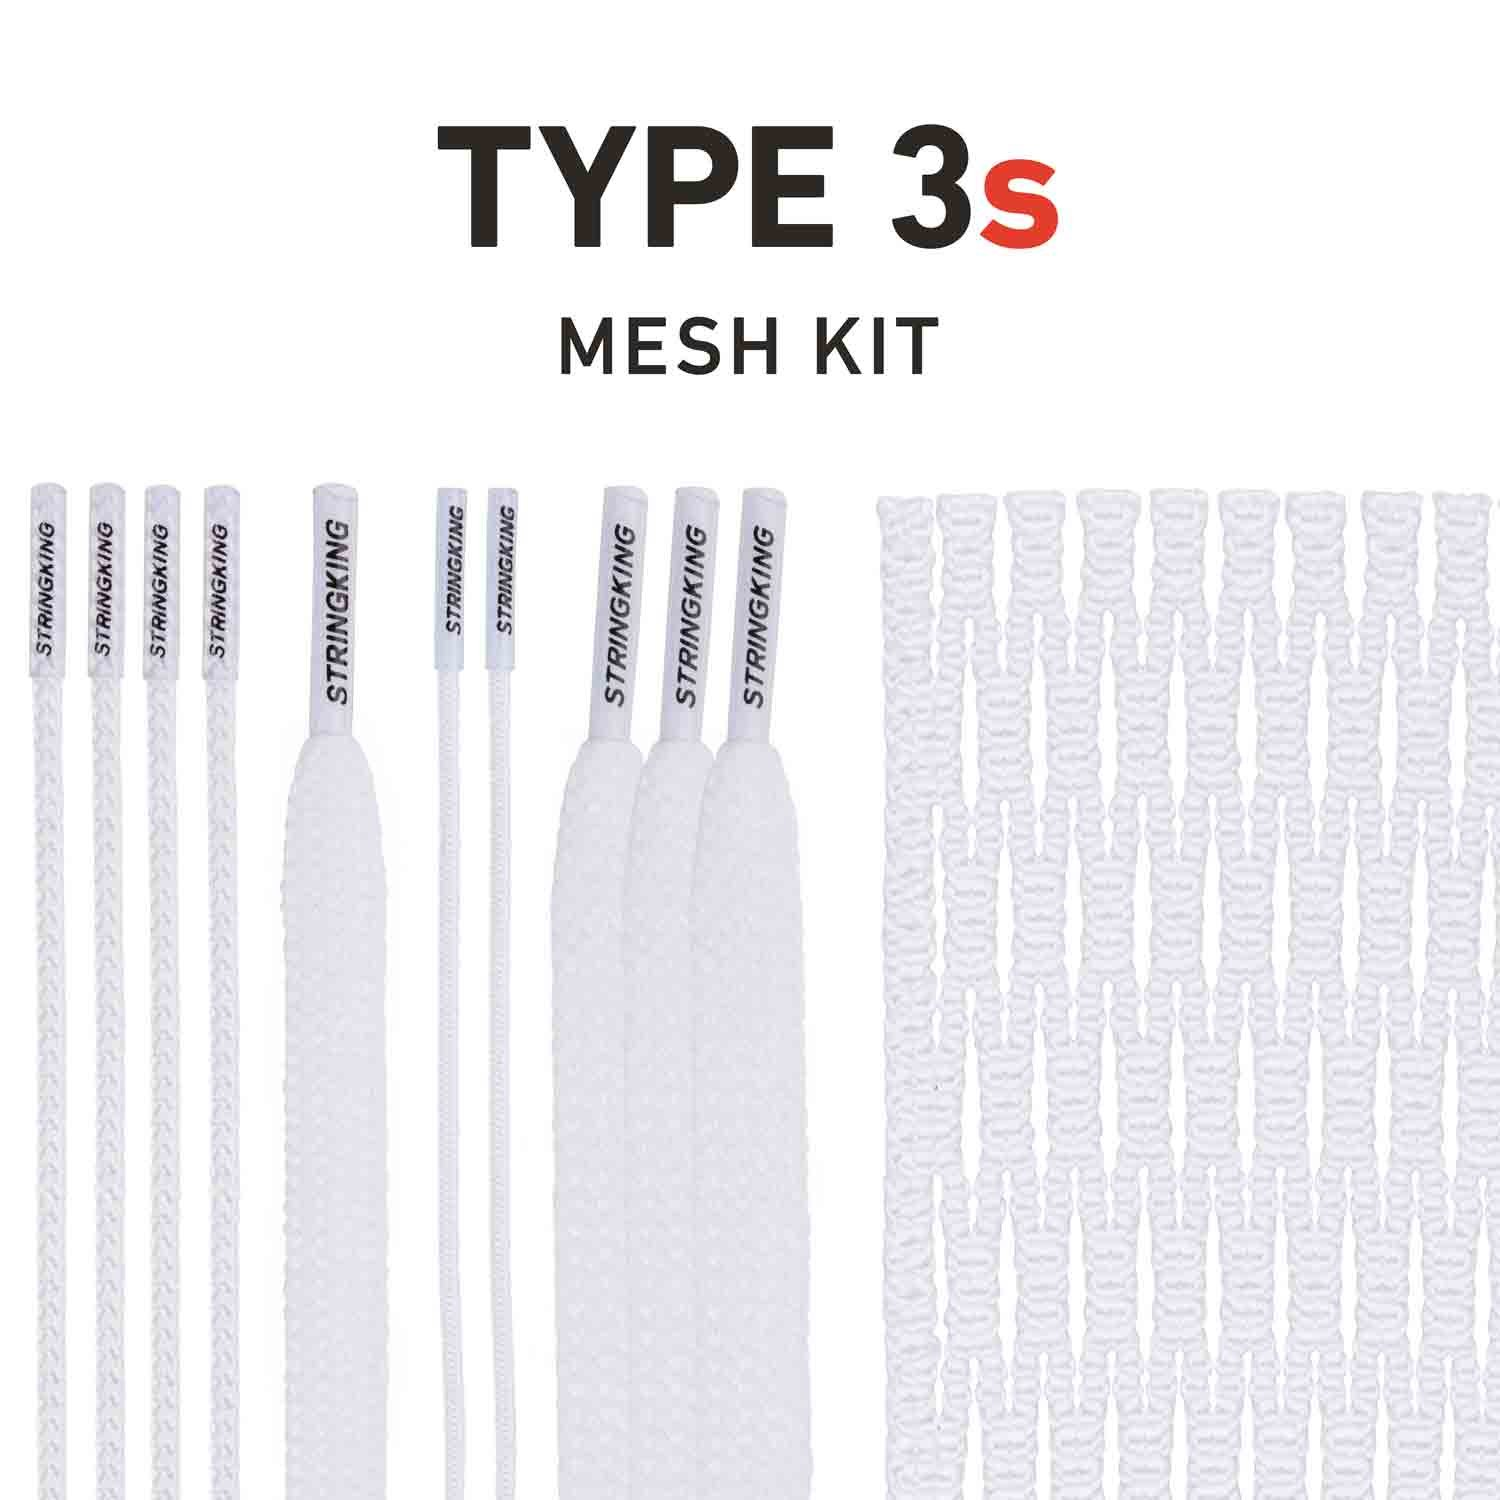 String King Type 3s Semi-Soft Lacrosse Mesh Handy Kit with Mesh & Strings (White)